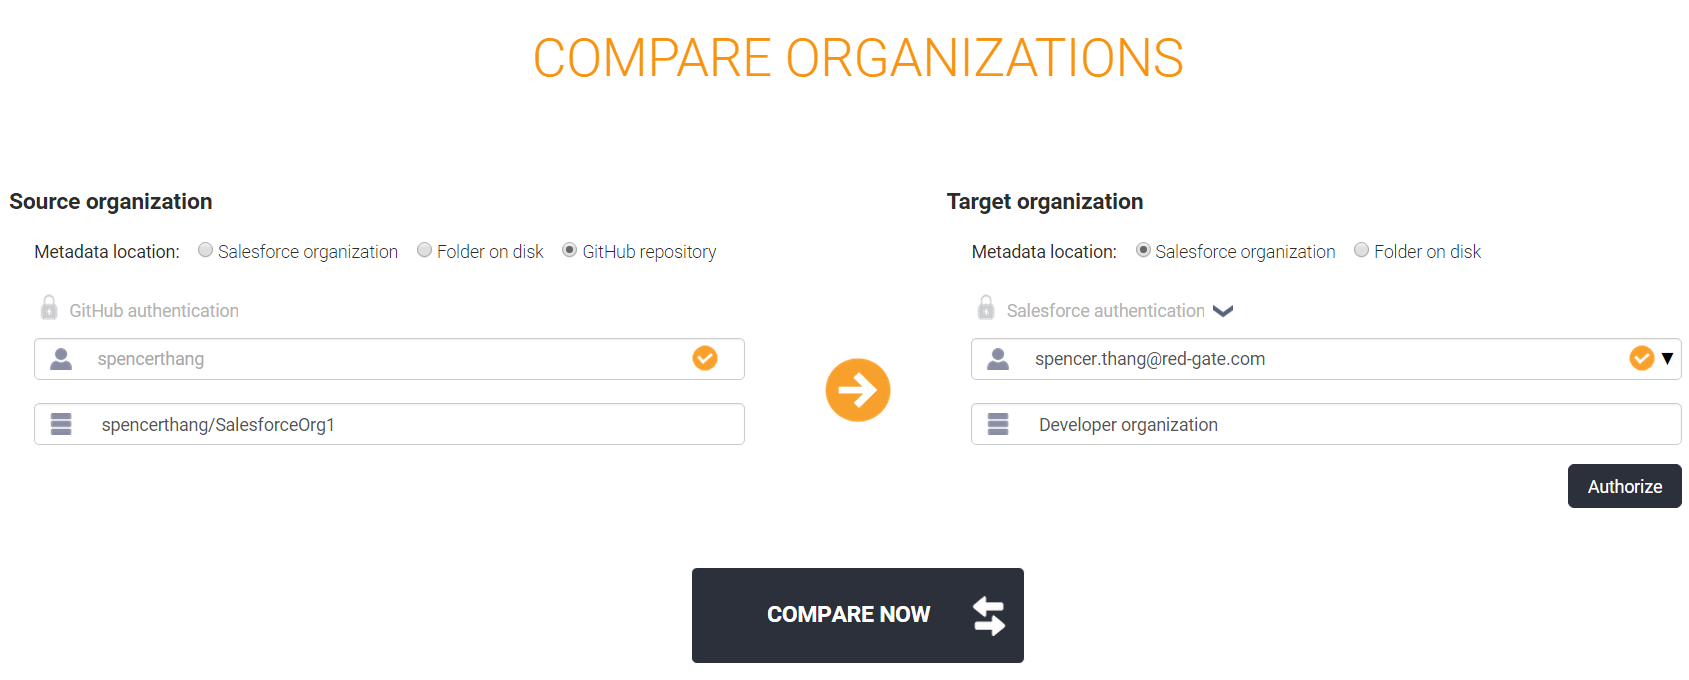 Comparison page with source and target organizations filled